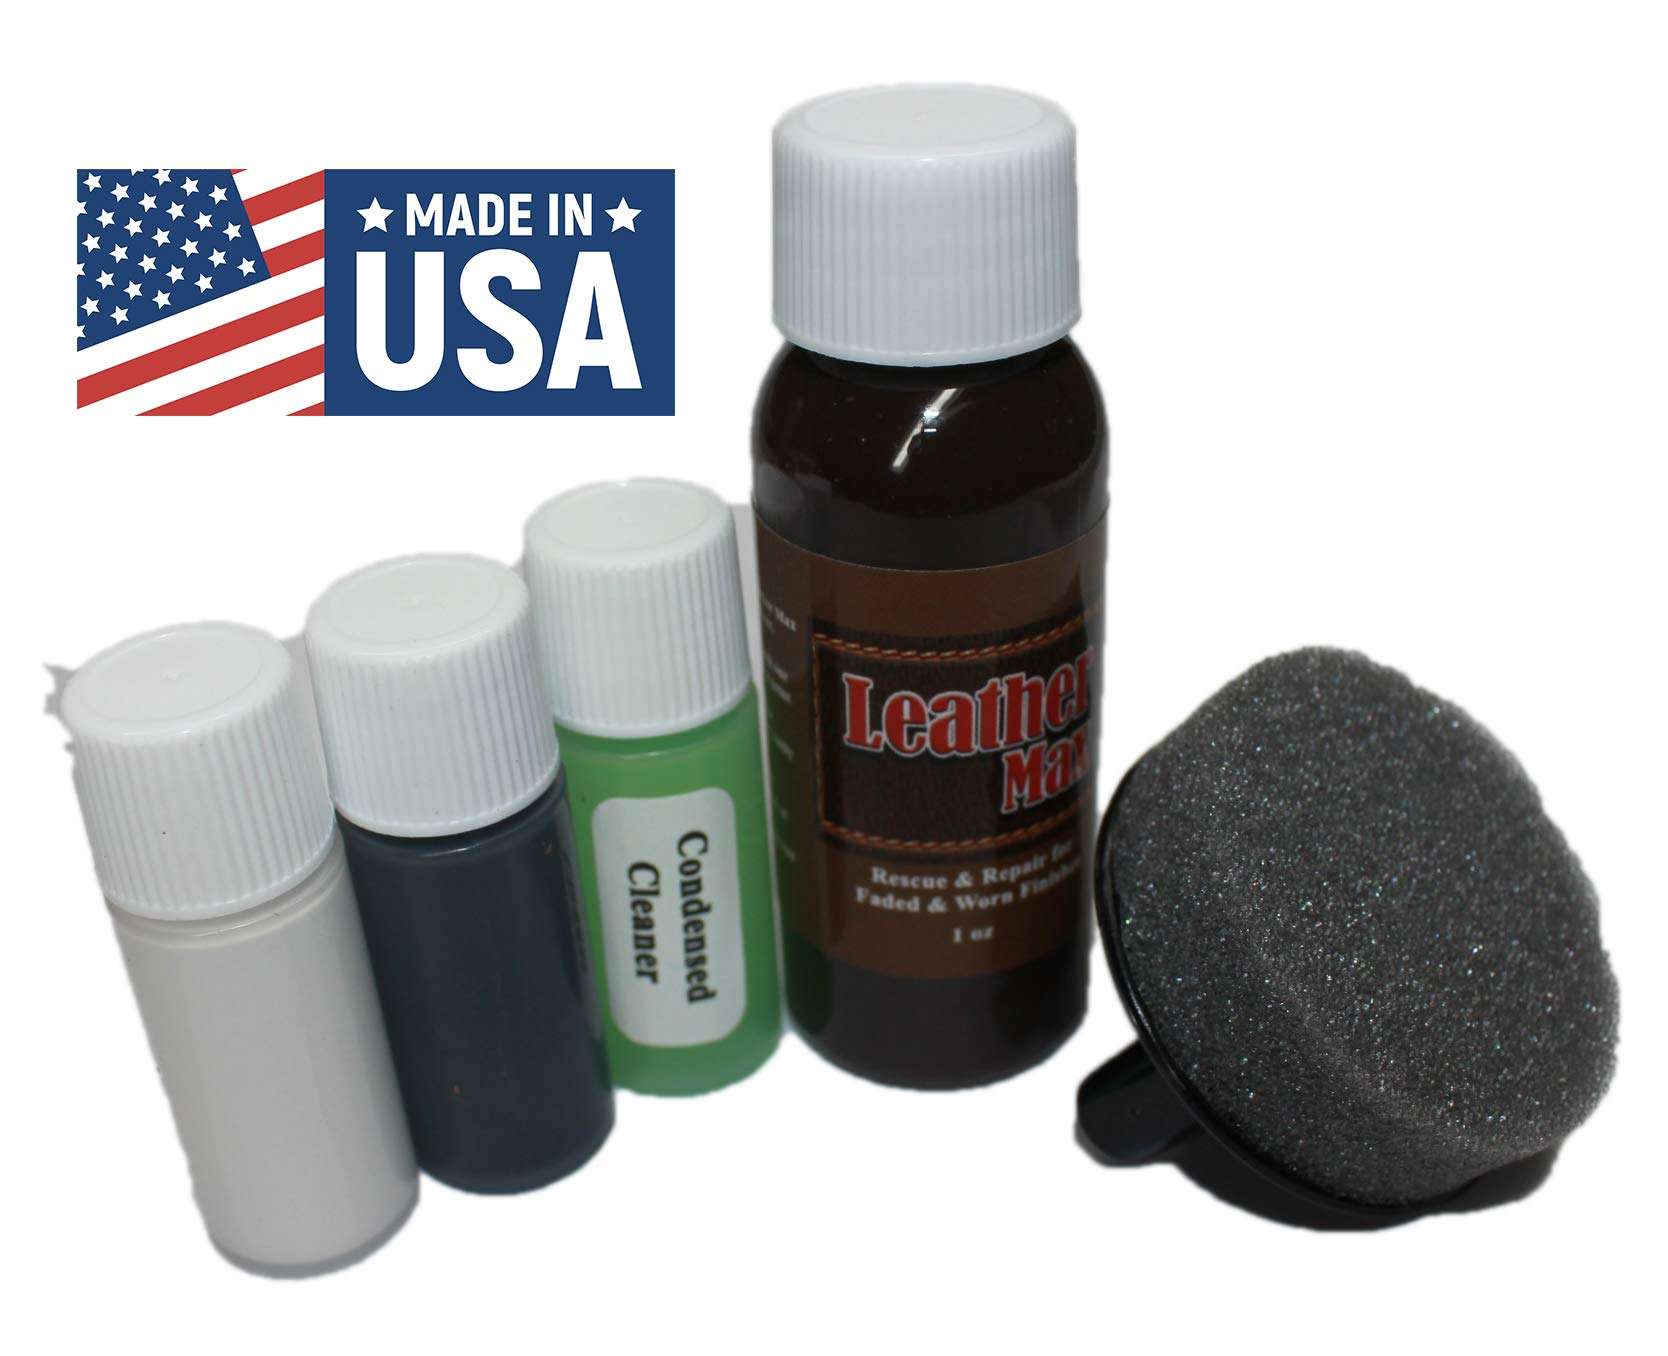 Leather Repair, Refinish, Restore Kit/Leather Max Touch-up for Leather & Vinyl Refinishing (Autumn Red)